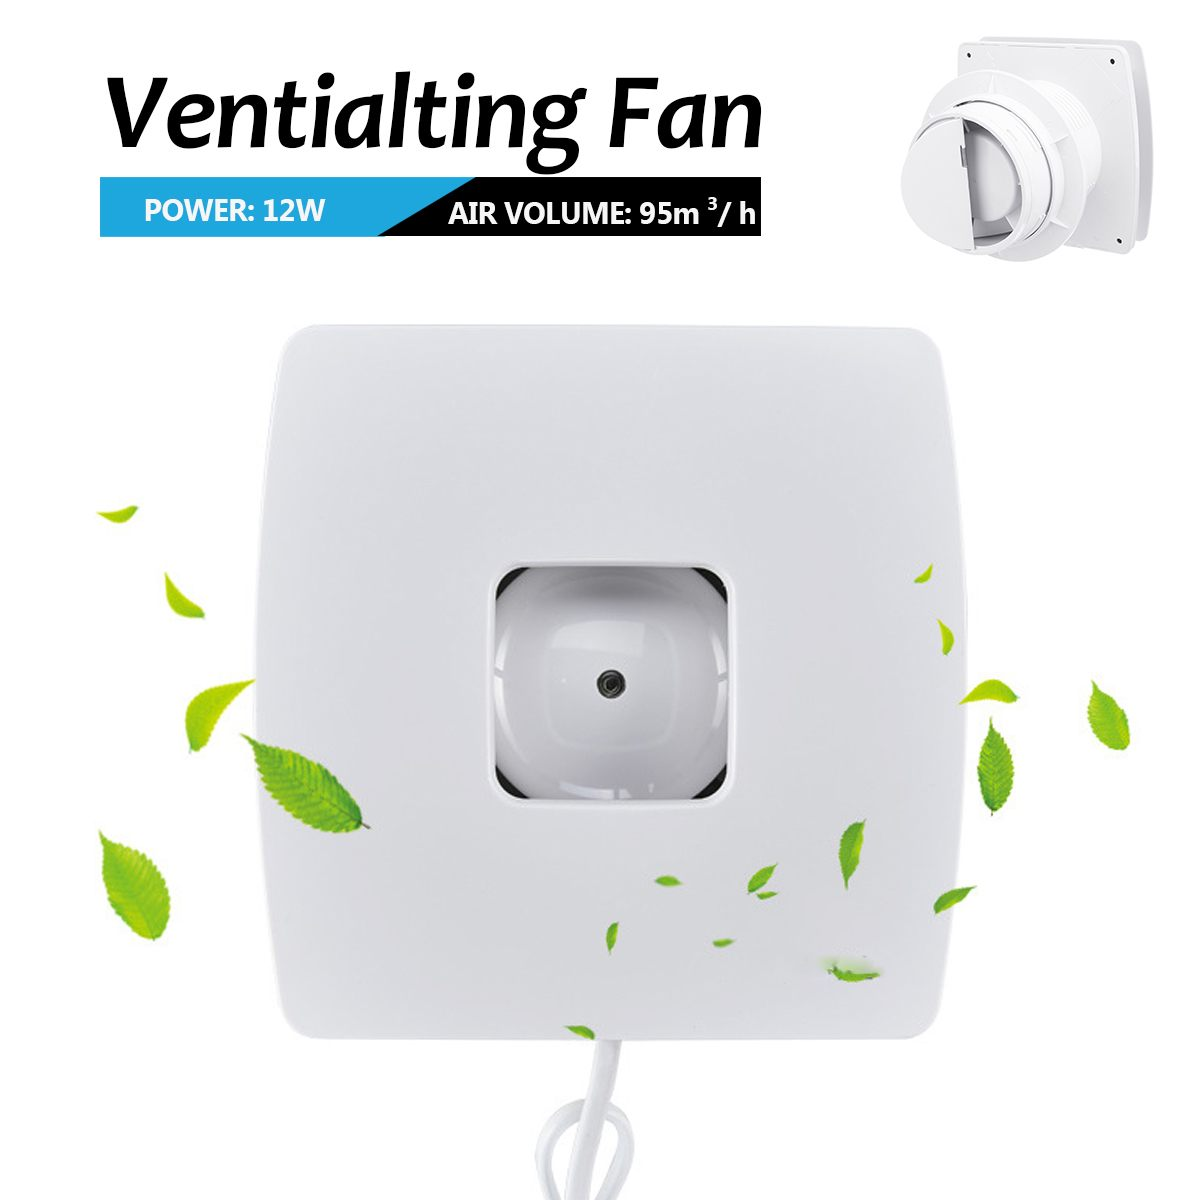 12W Ventilation Fan Cool Quiet Ducted High Speed Air Ventilator Blower Pipe Extractor Bathroom Kitchen Toilet Home Exhaust fan